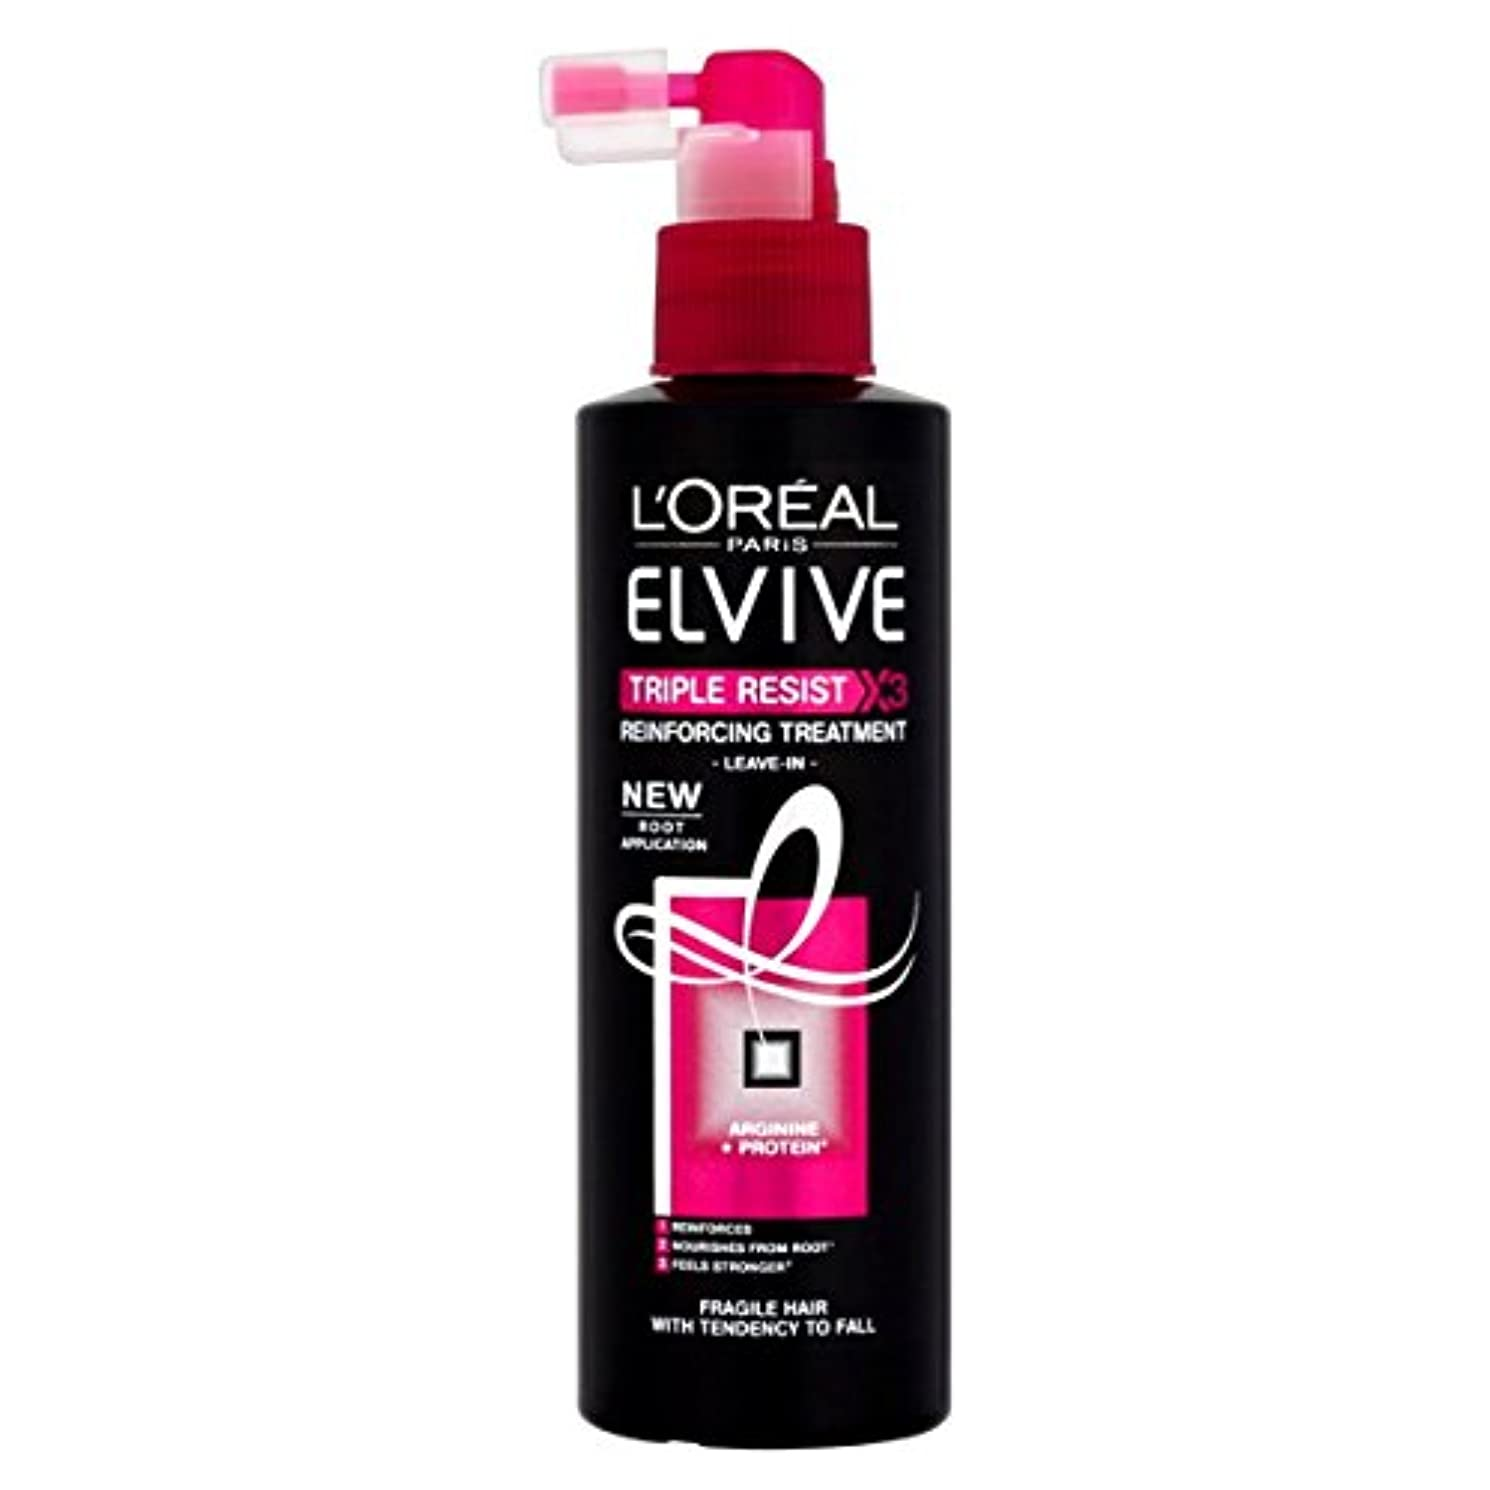 煙突法律によりぞっとするようなL 'Oréal Paris Elvive Triple Resist Leave-In verstärkendem Treatment 200 ml